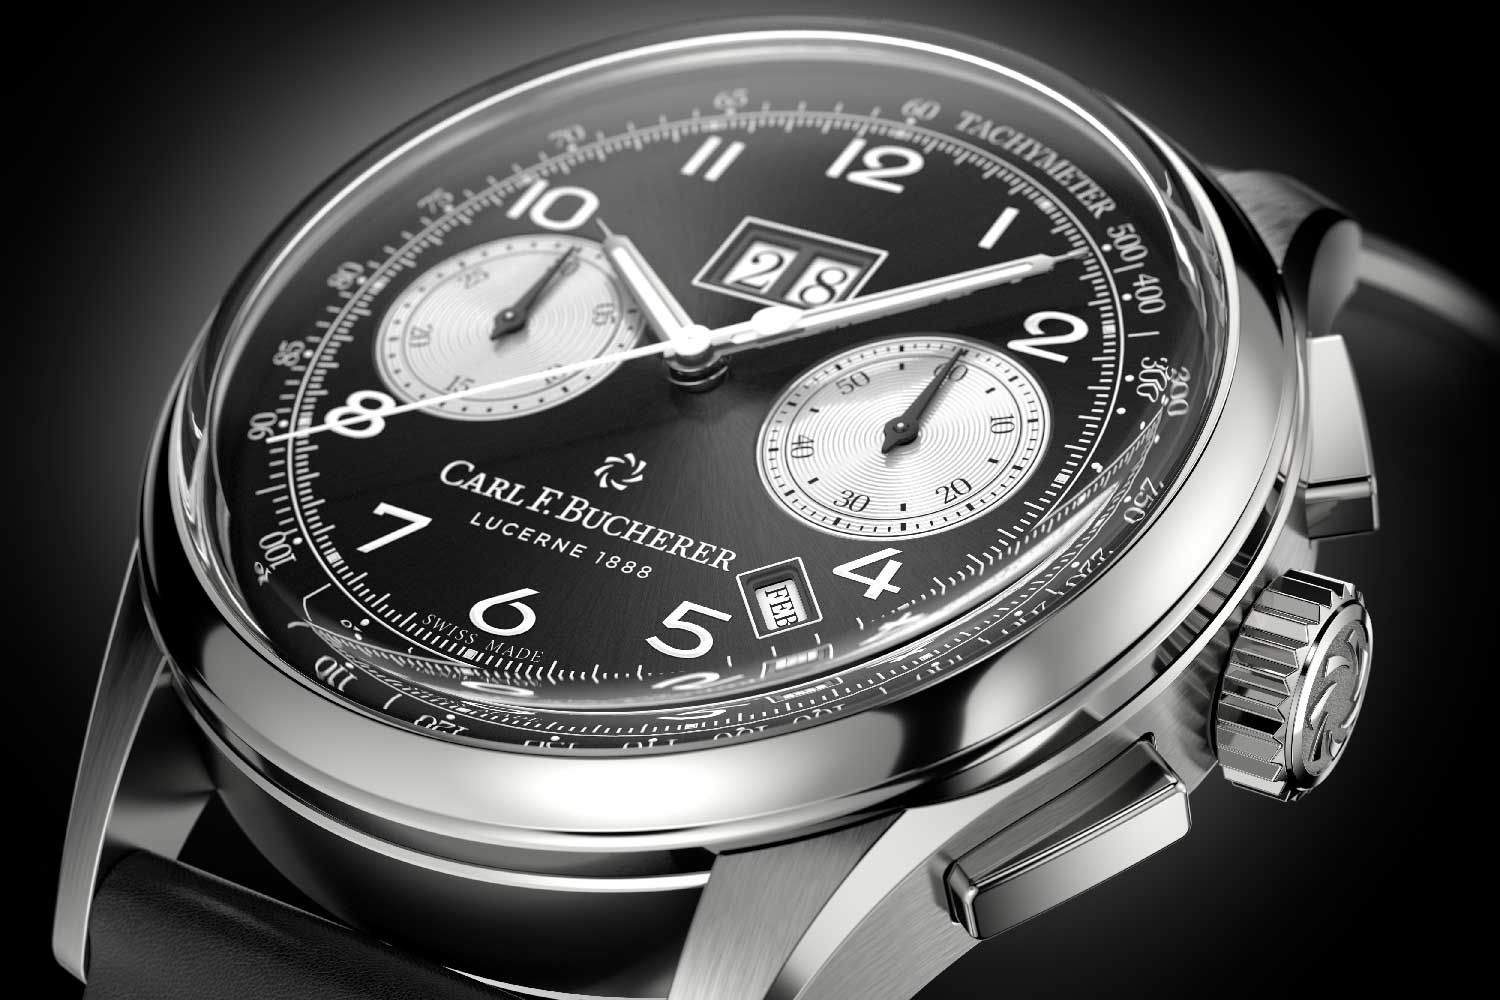 The Heritage BiCompax Annual in steel with a black dial and silver-coloured subdials released this year.